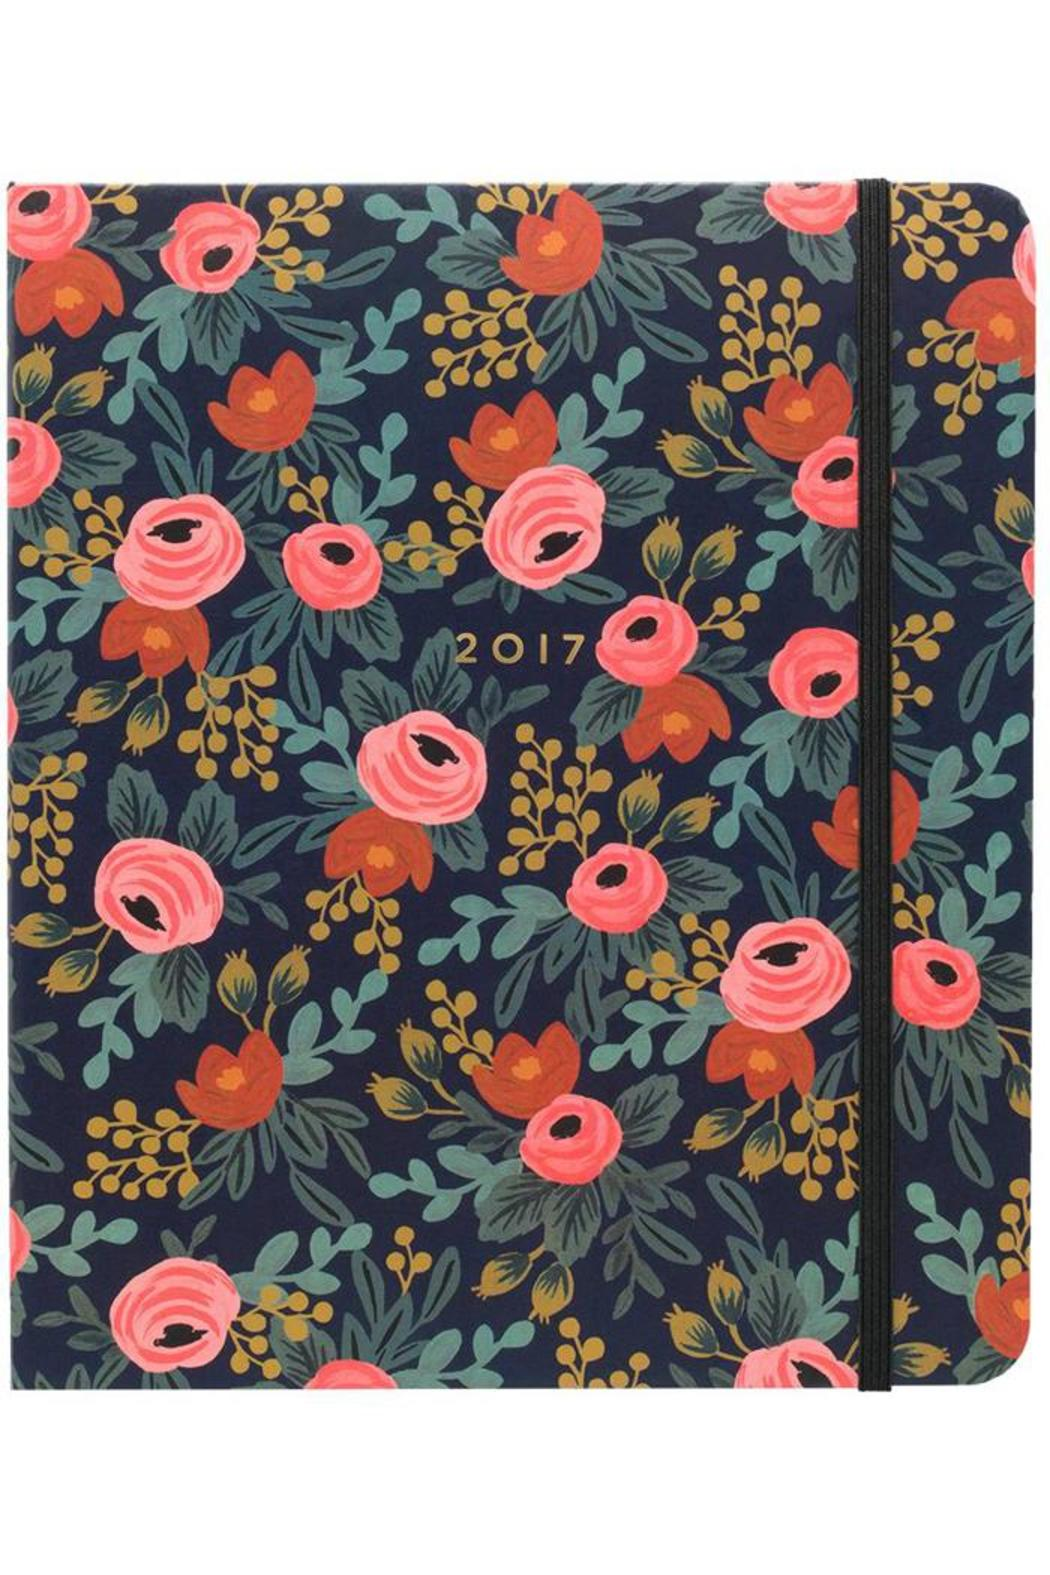 Rifle Paper Co.  2017 Rosa Planner - Main Image